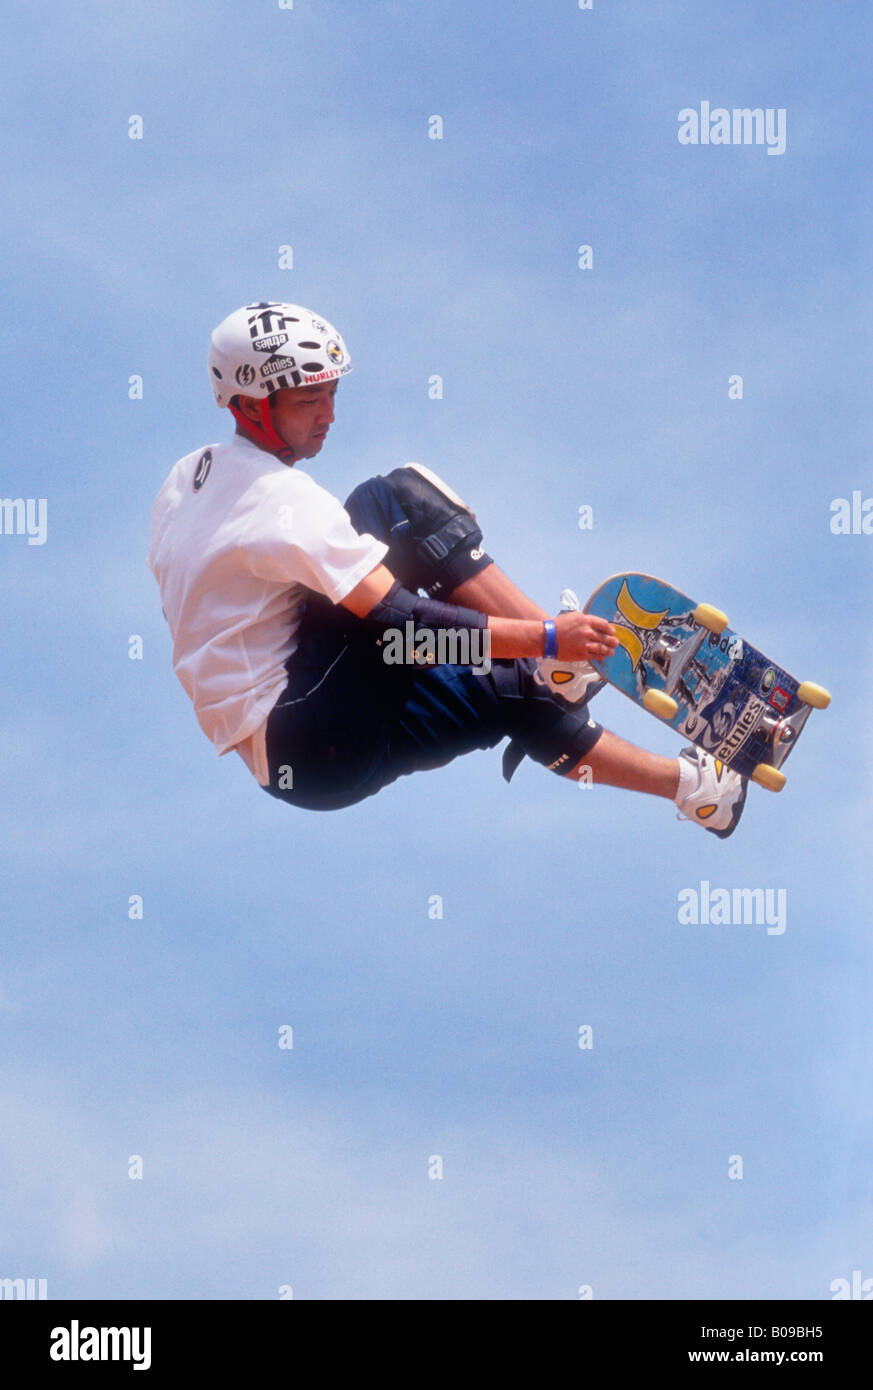 Skate Boarder Doing Trick in the Air During B3 Games Kentucky Derby Festival Louisville Kentucky - Stock Image